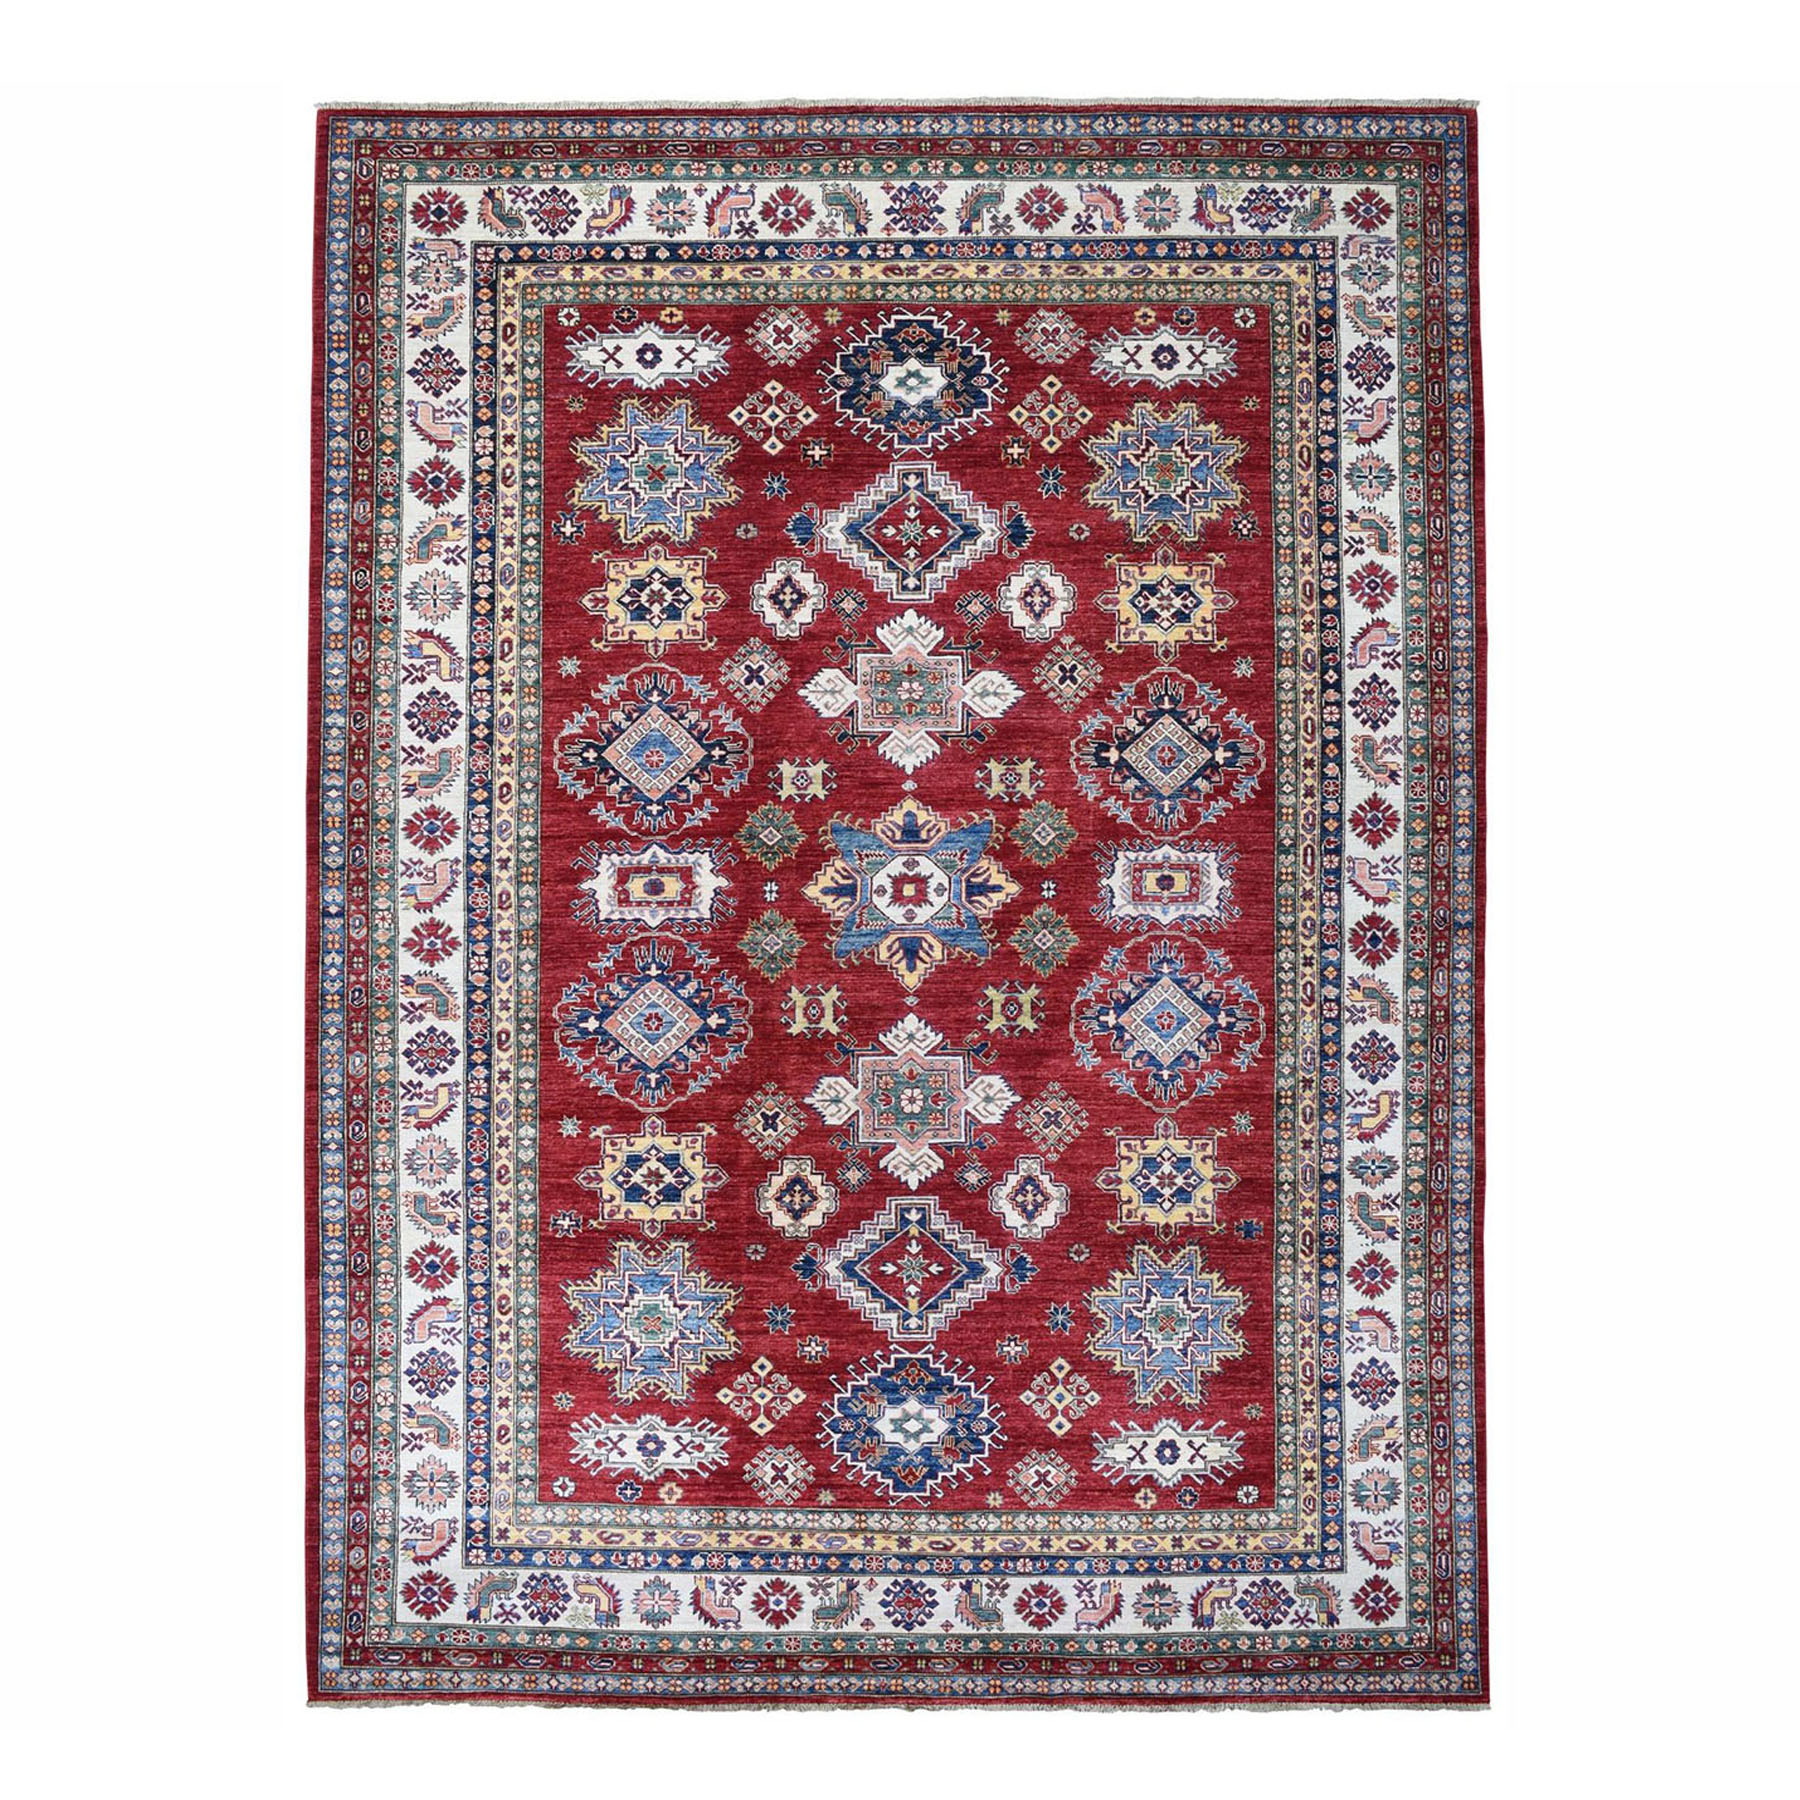 "8'9""x11'9"" Red Super Kazak Pure Wool Geometric Design Hand Woven Oriental Rug"